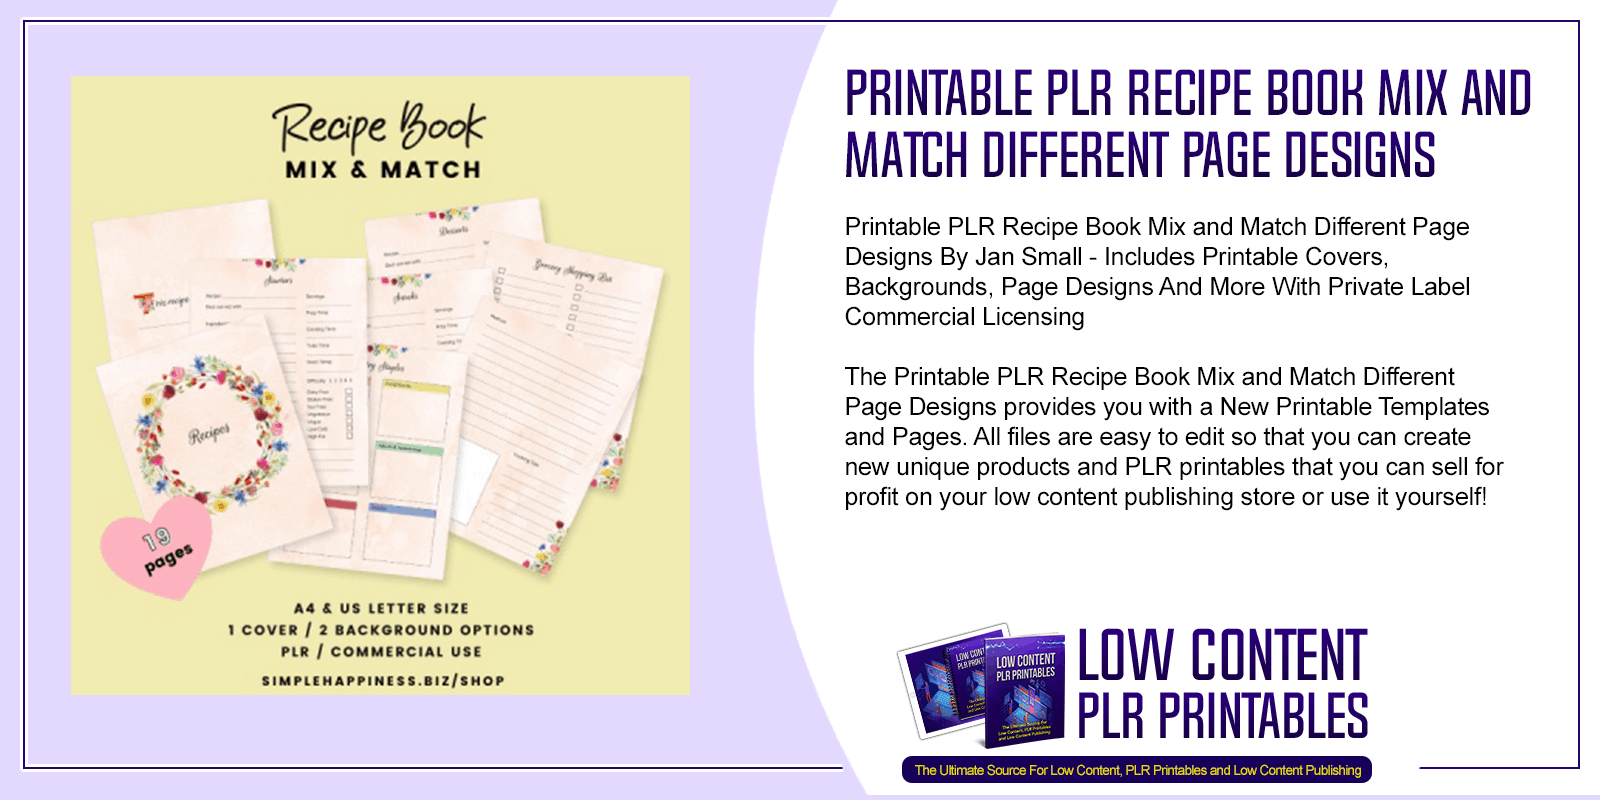 Printable PLR Recipe Book Mix and Match Different Page Designs